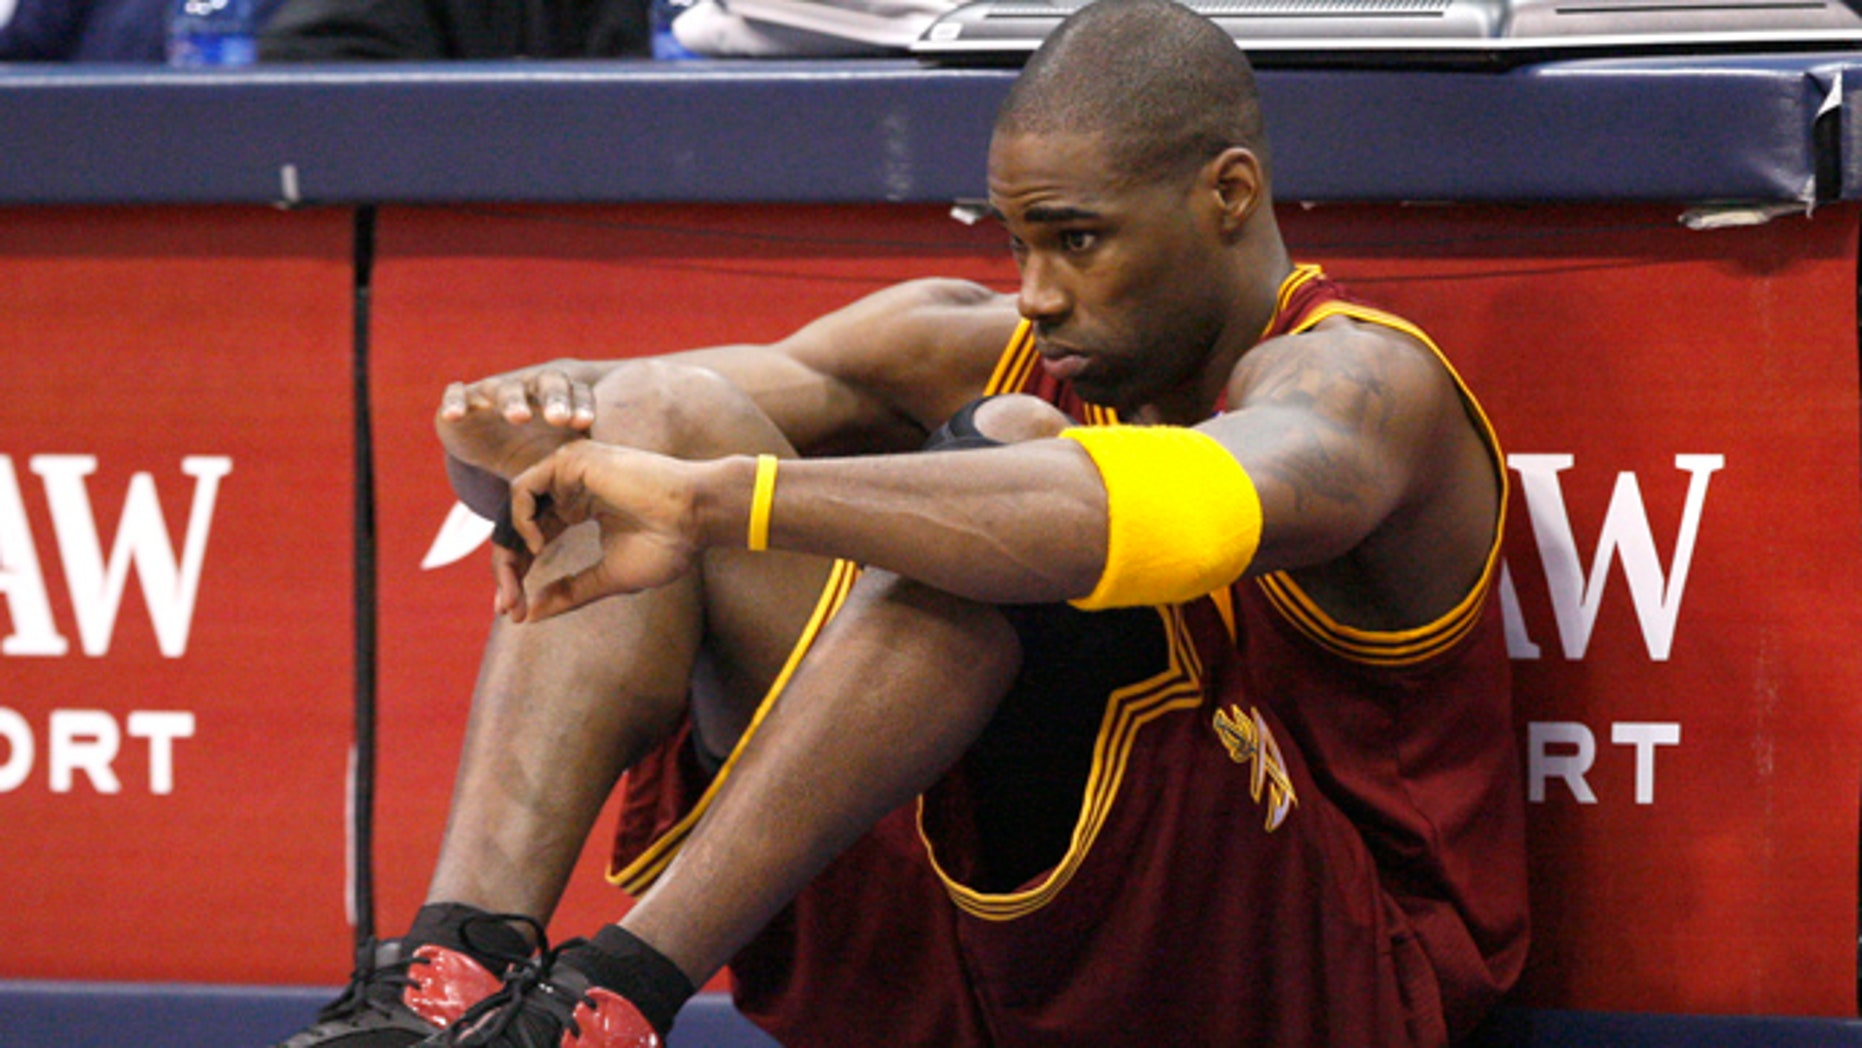 Feb. 7: Cleveland Cavaliers power forward Antawn Jamison (4) sits in front of the scorer's tables, waiting to be subbed in during the first half of the NBA basketball game against the Dallas Mavericks in Dallas.